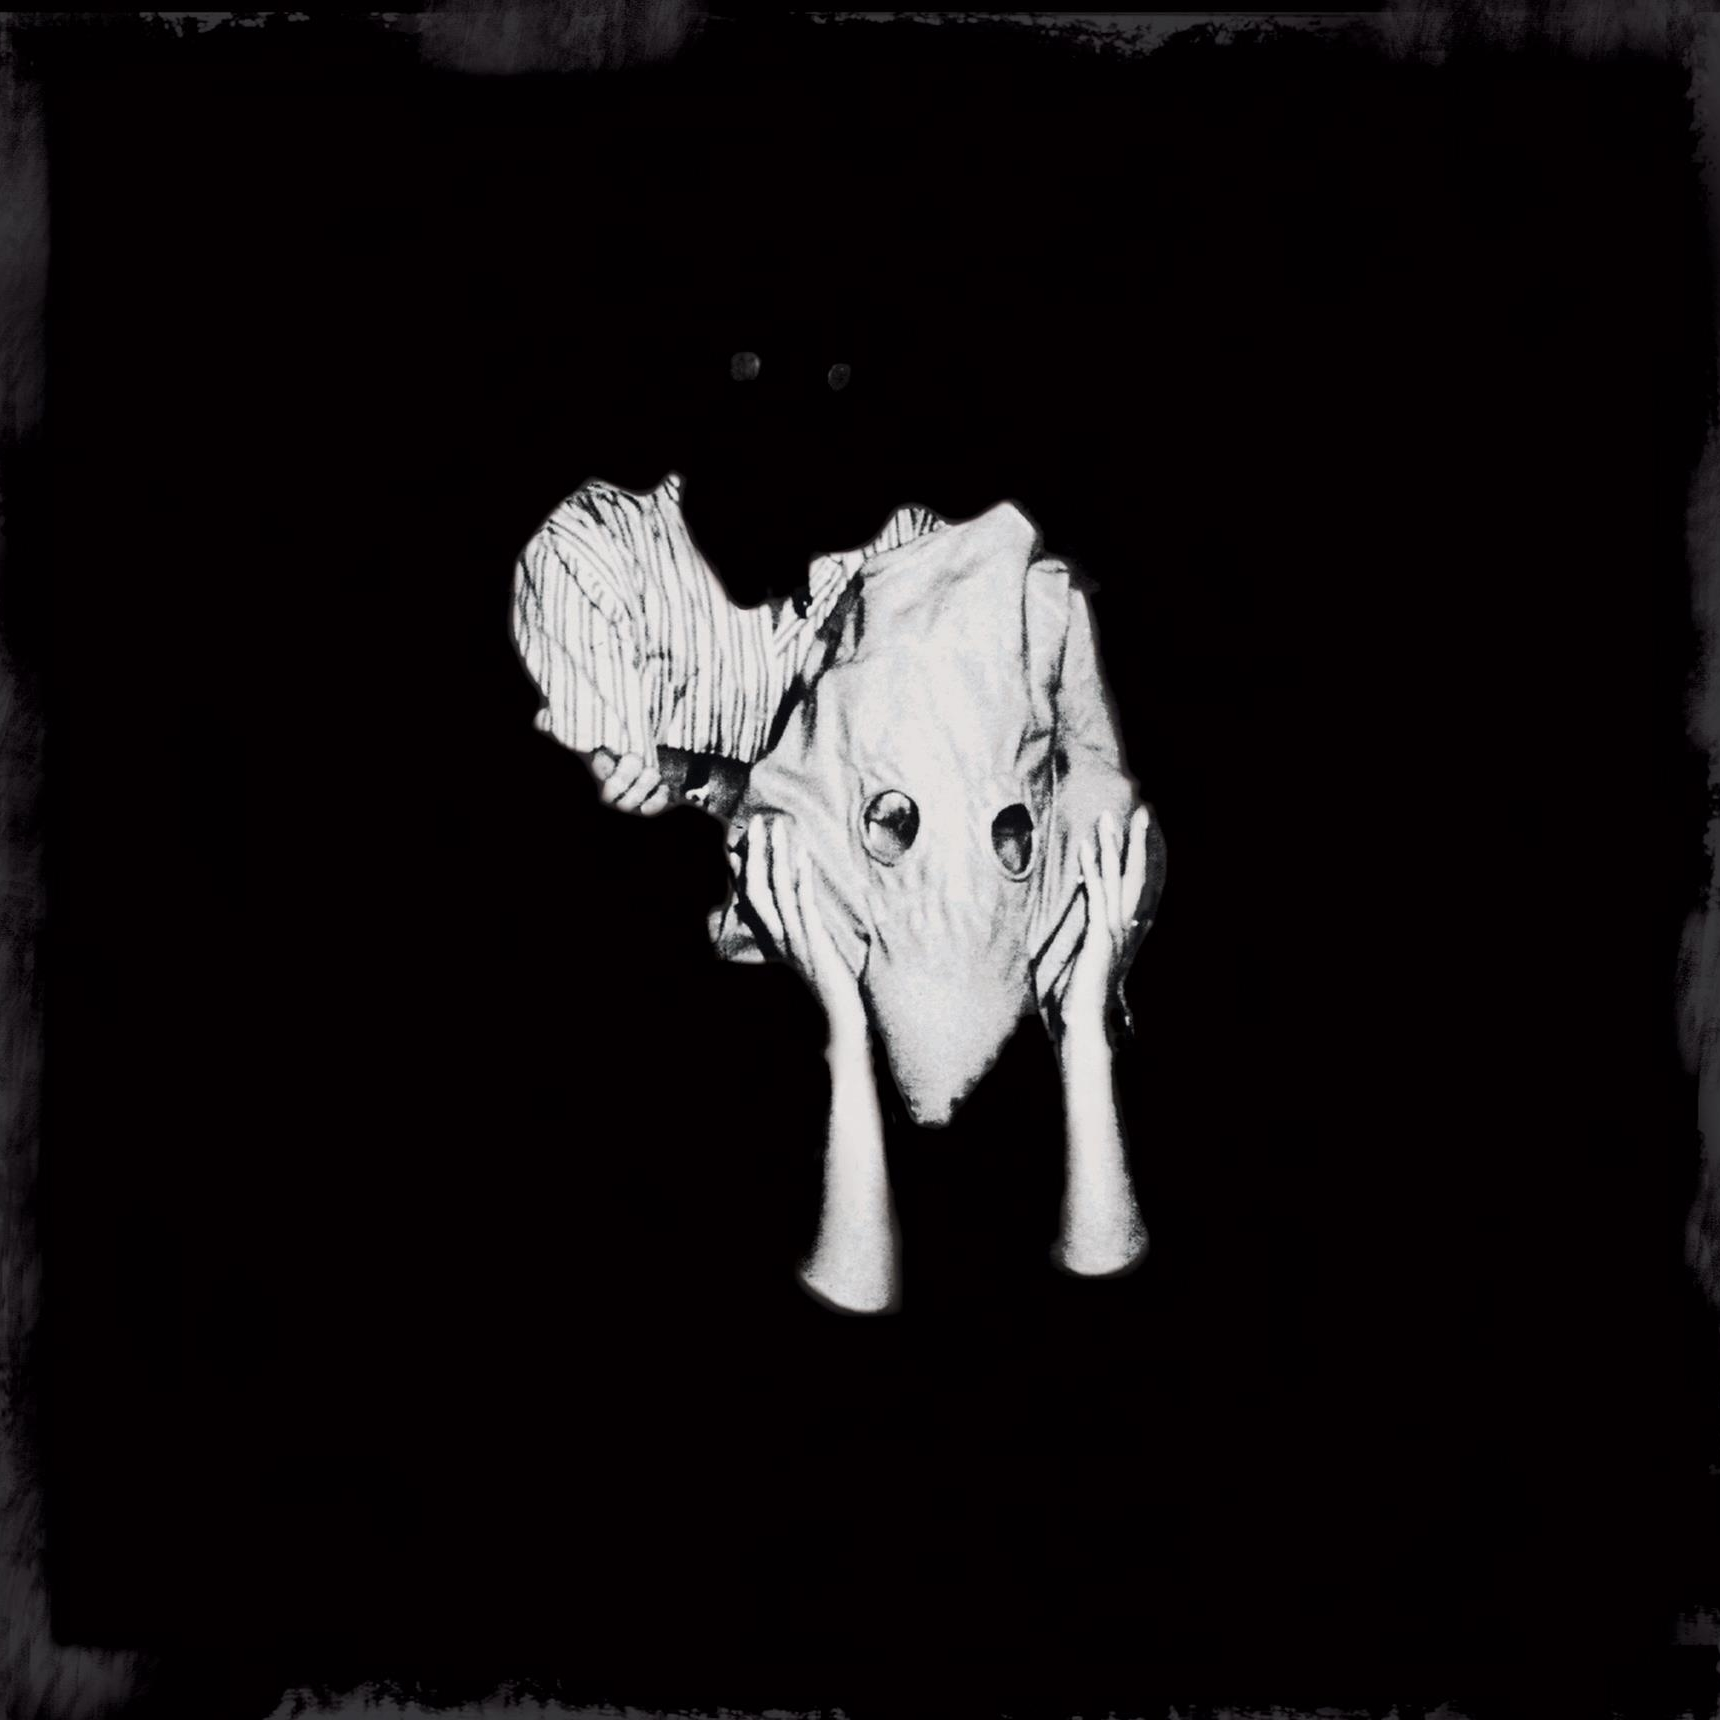 Sigur Ros' Kveikur is out now.